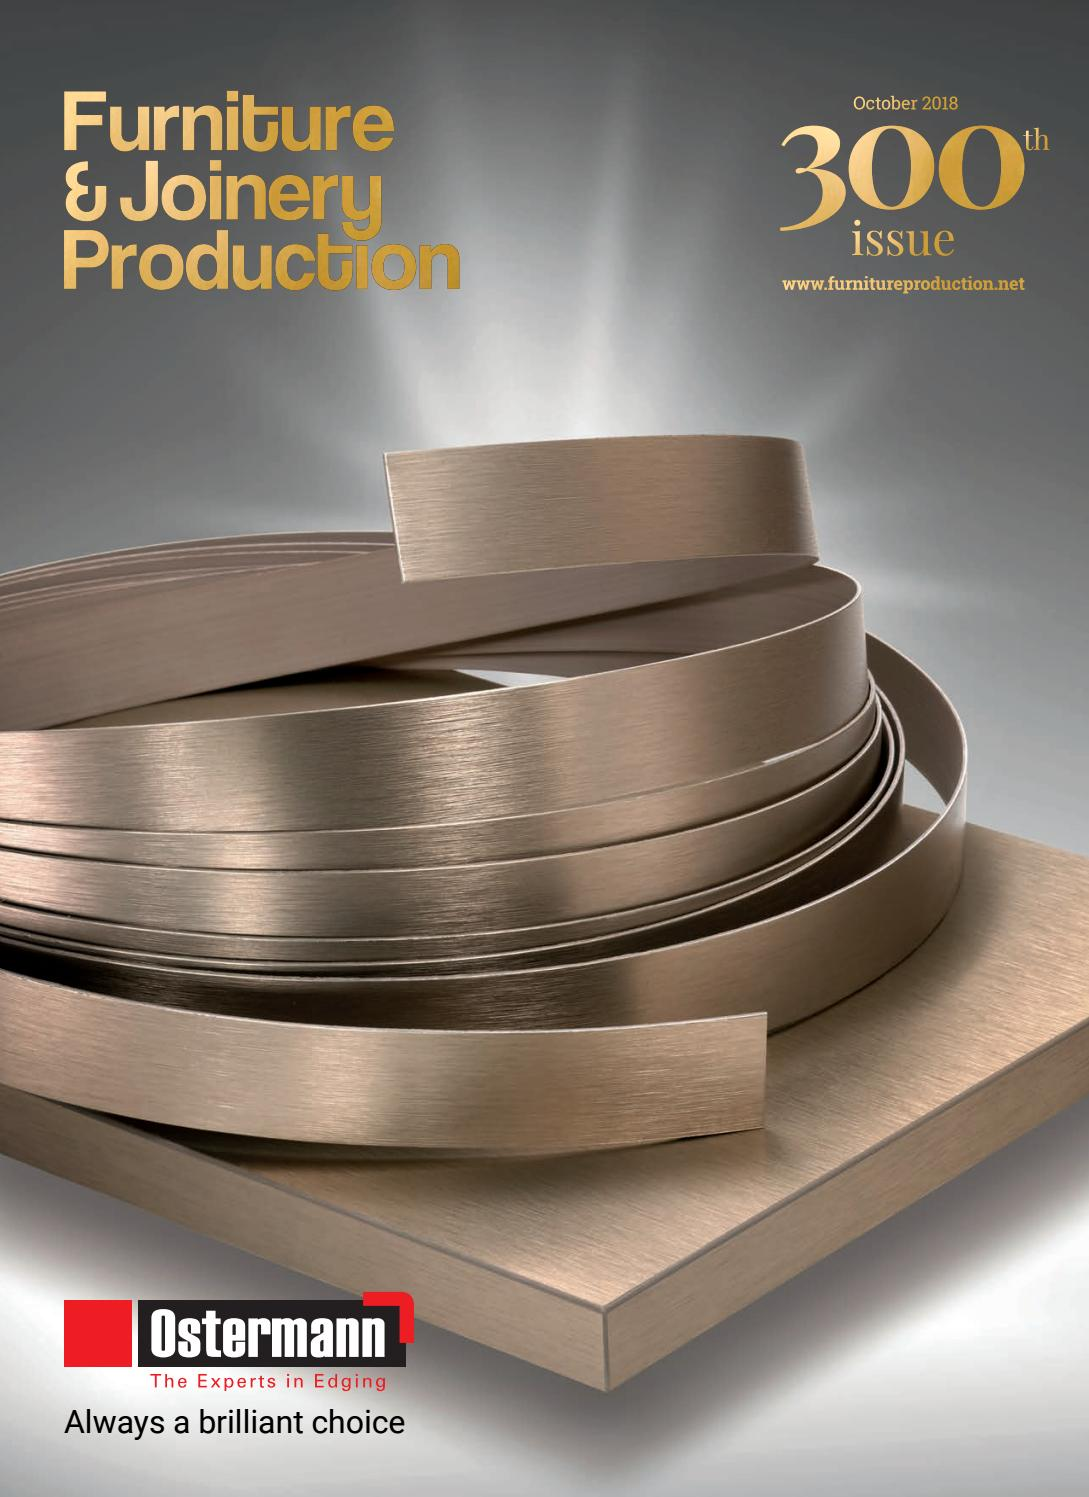 Furniture & Joinery Production #300 by Gearing Media Group